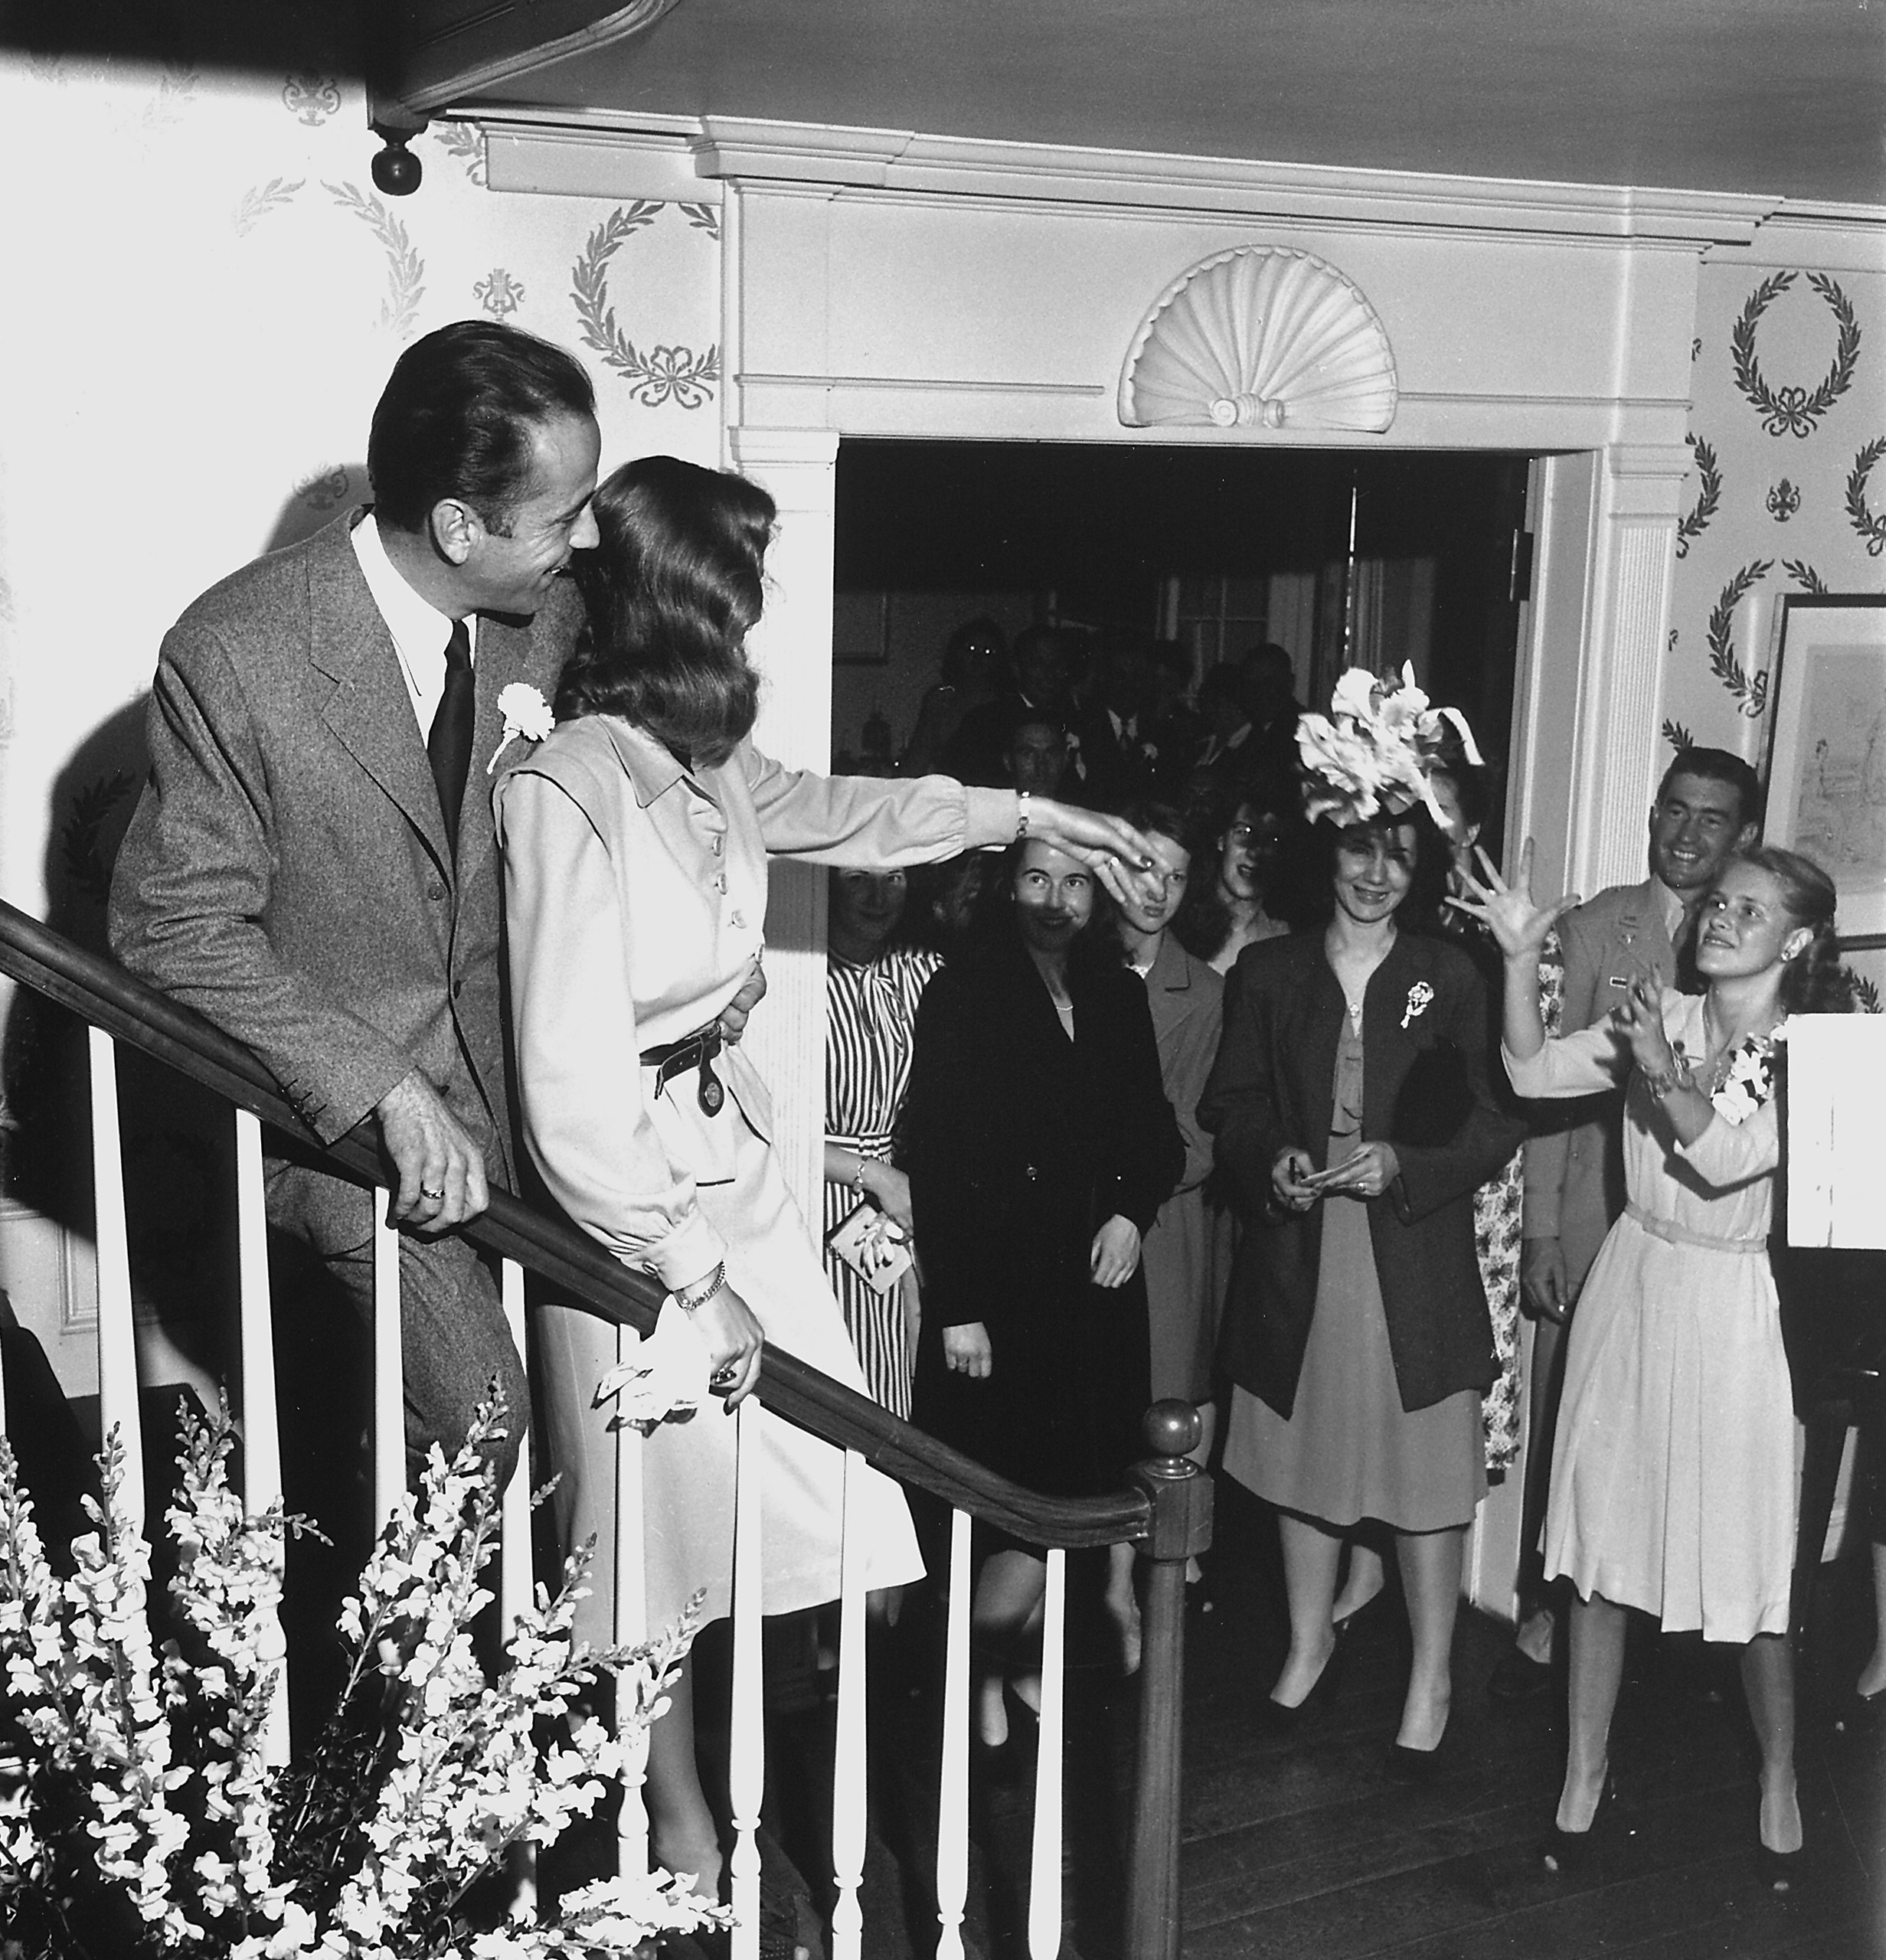 Bacall tosses her bouquet to an eager crowd.